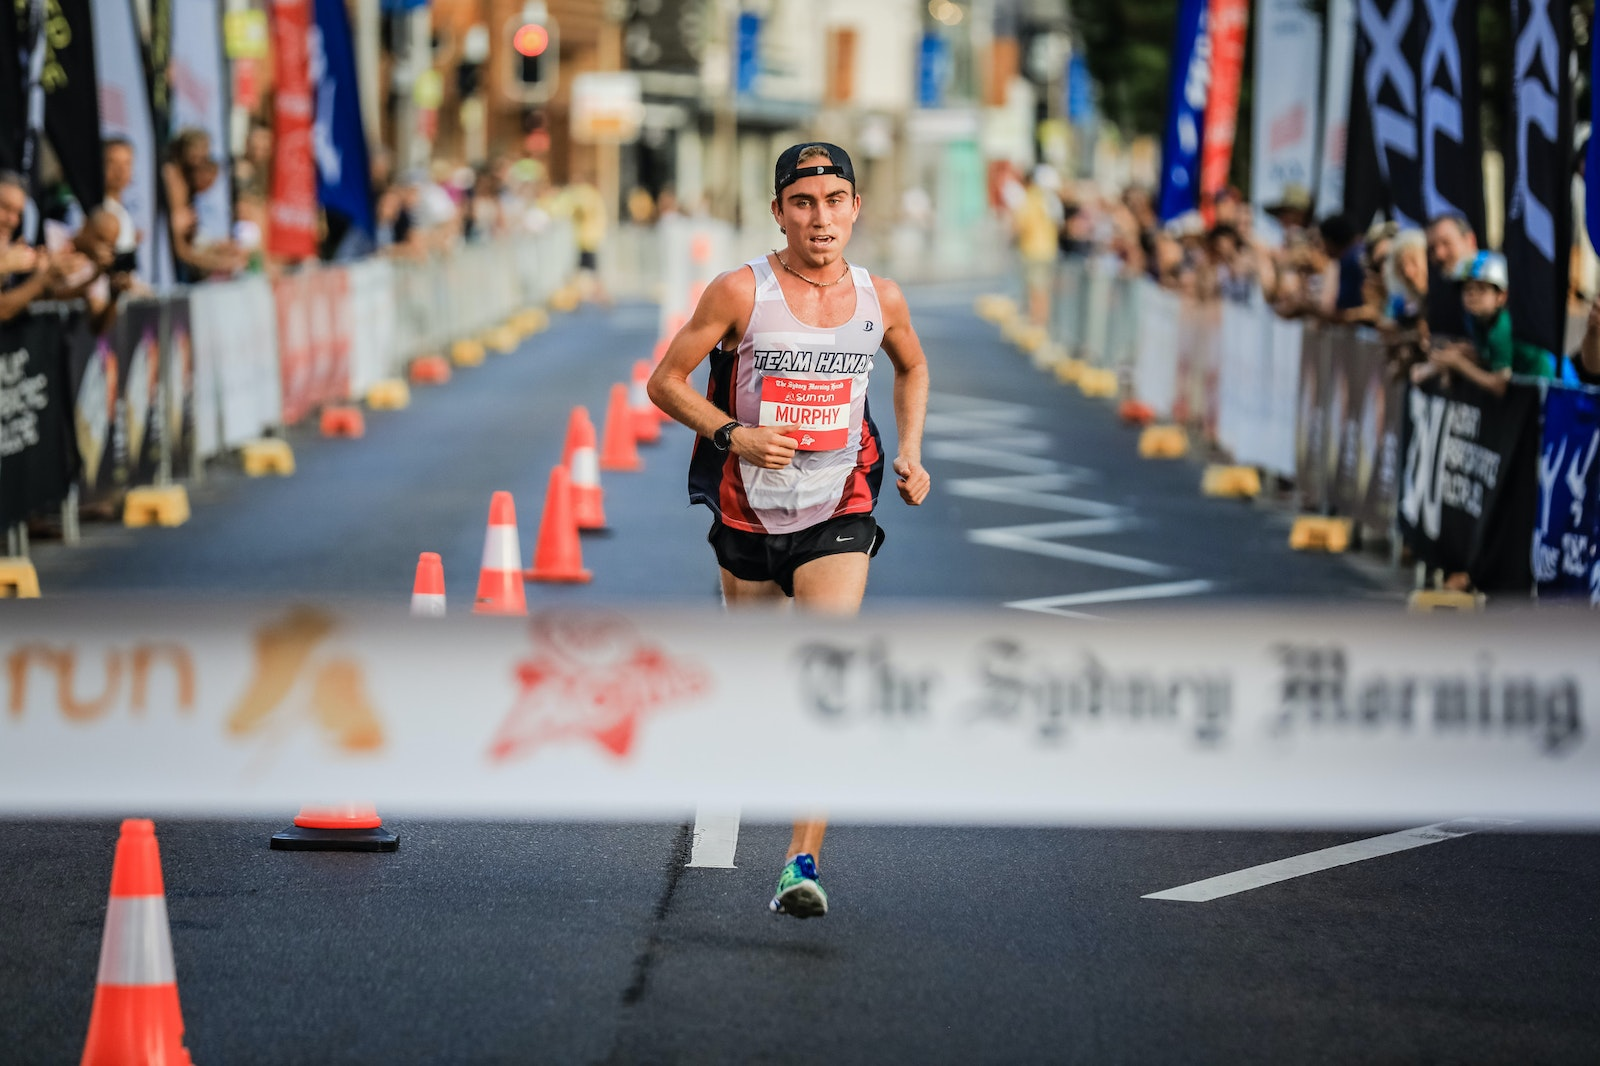 SMH Sun Run © Salty Dingo 2017-6884 - 4th February 2017, Pierce Murphy winner of 10km The Sydney Morning Herald Sun Run at Manly. Picture by Salty Dingo...